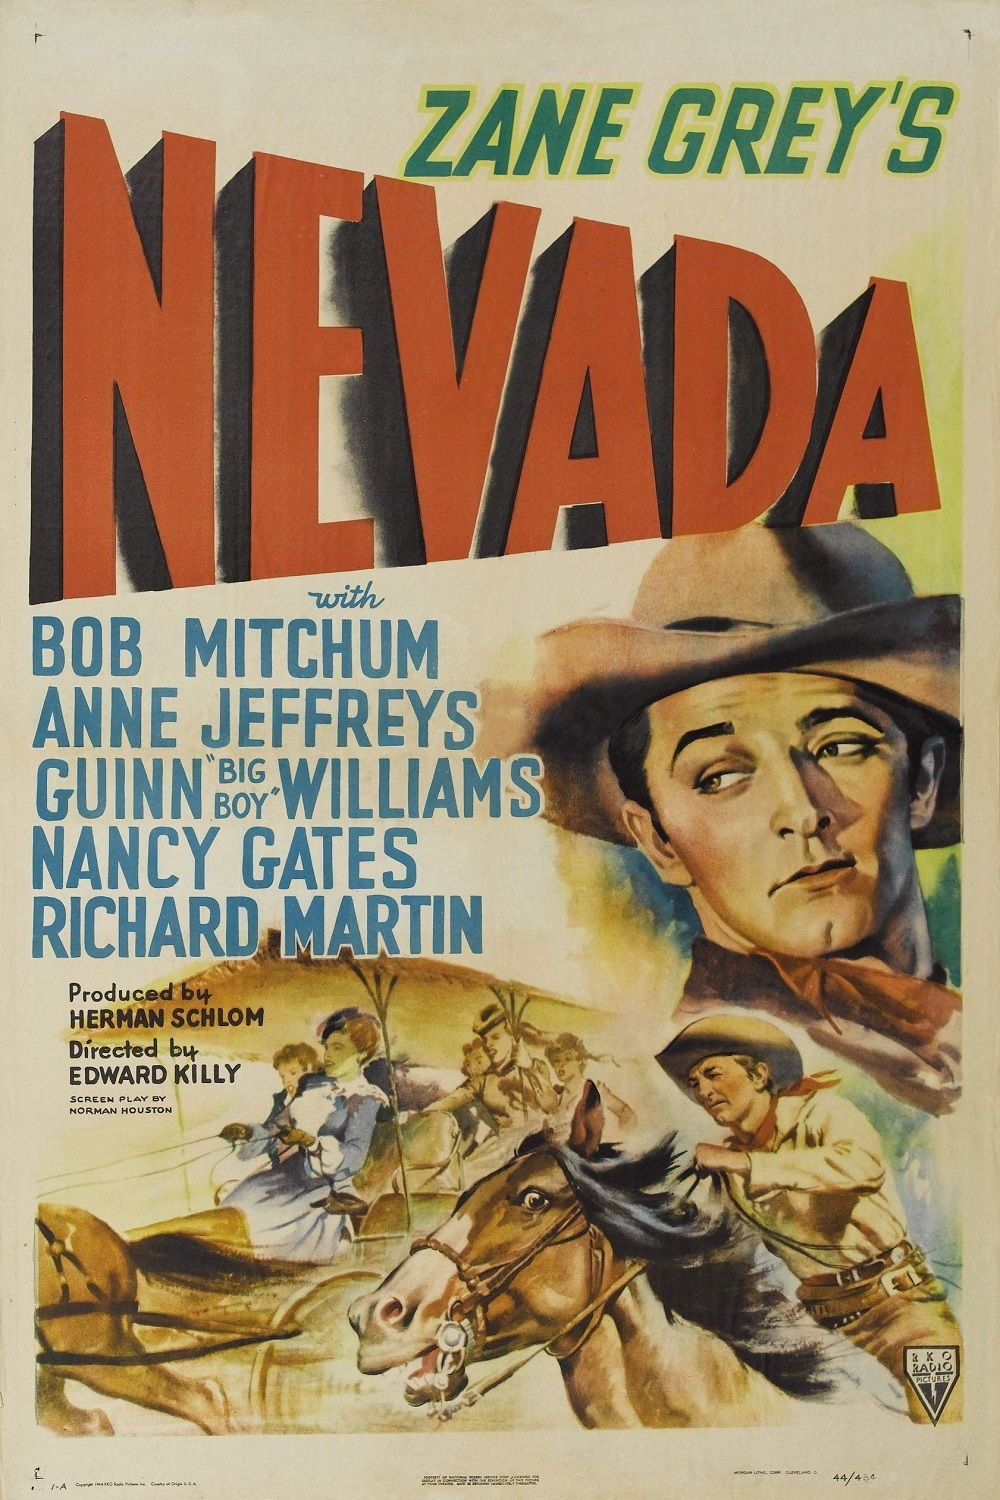 - Just as Nevada wins $7000 in yellowback bills, Ben Ide takes his $7000 and heads out to buy mining equipment. Burridge has his man Powell kill Ide and retrieve the money and Nevada finds Ide just as the posse arrives. Found with the money Nevada is arrested and Burridge now gets Powell to incite the local citizens to lynch Nevada.19441 h 02 min